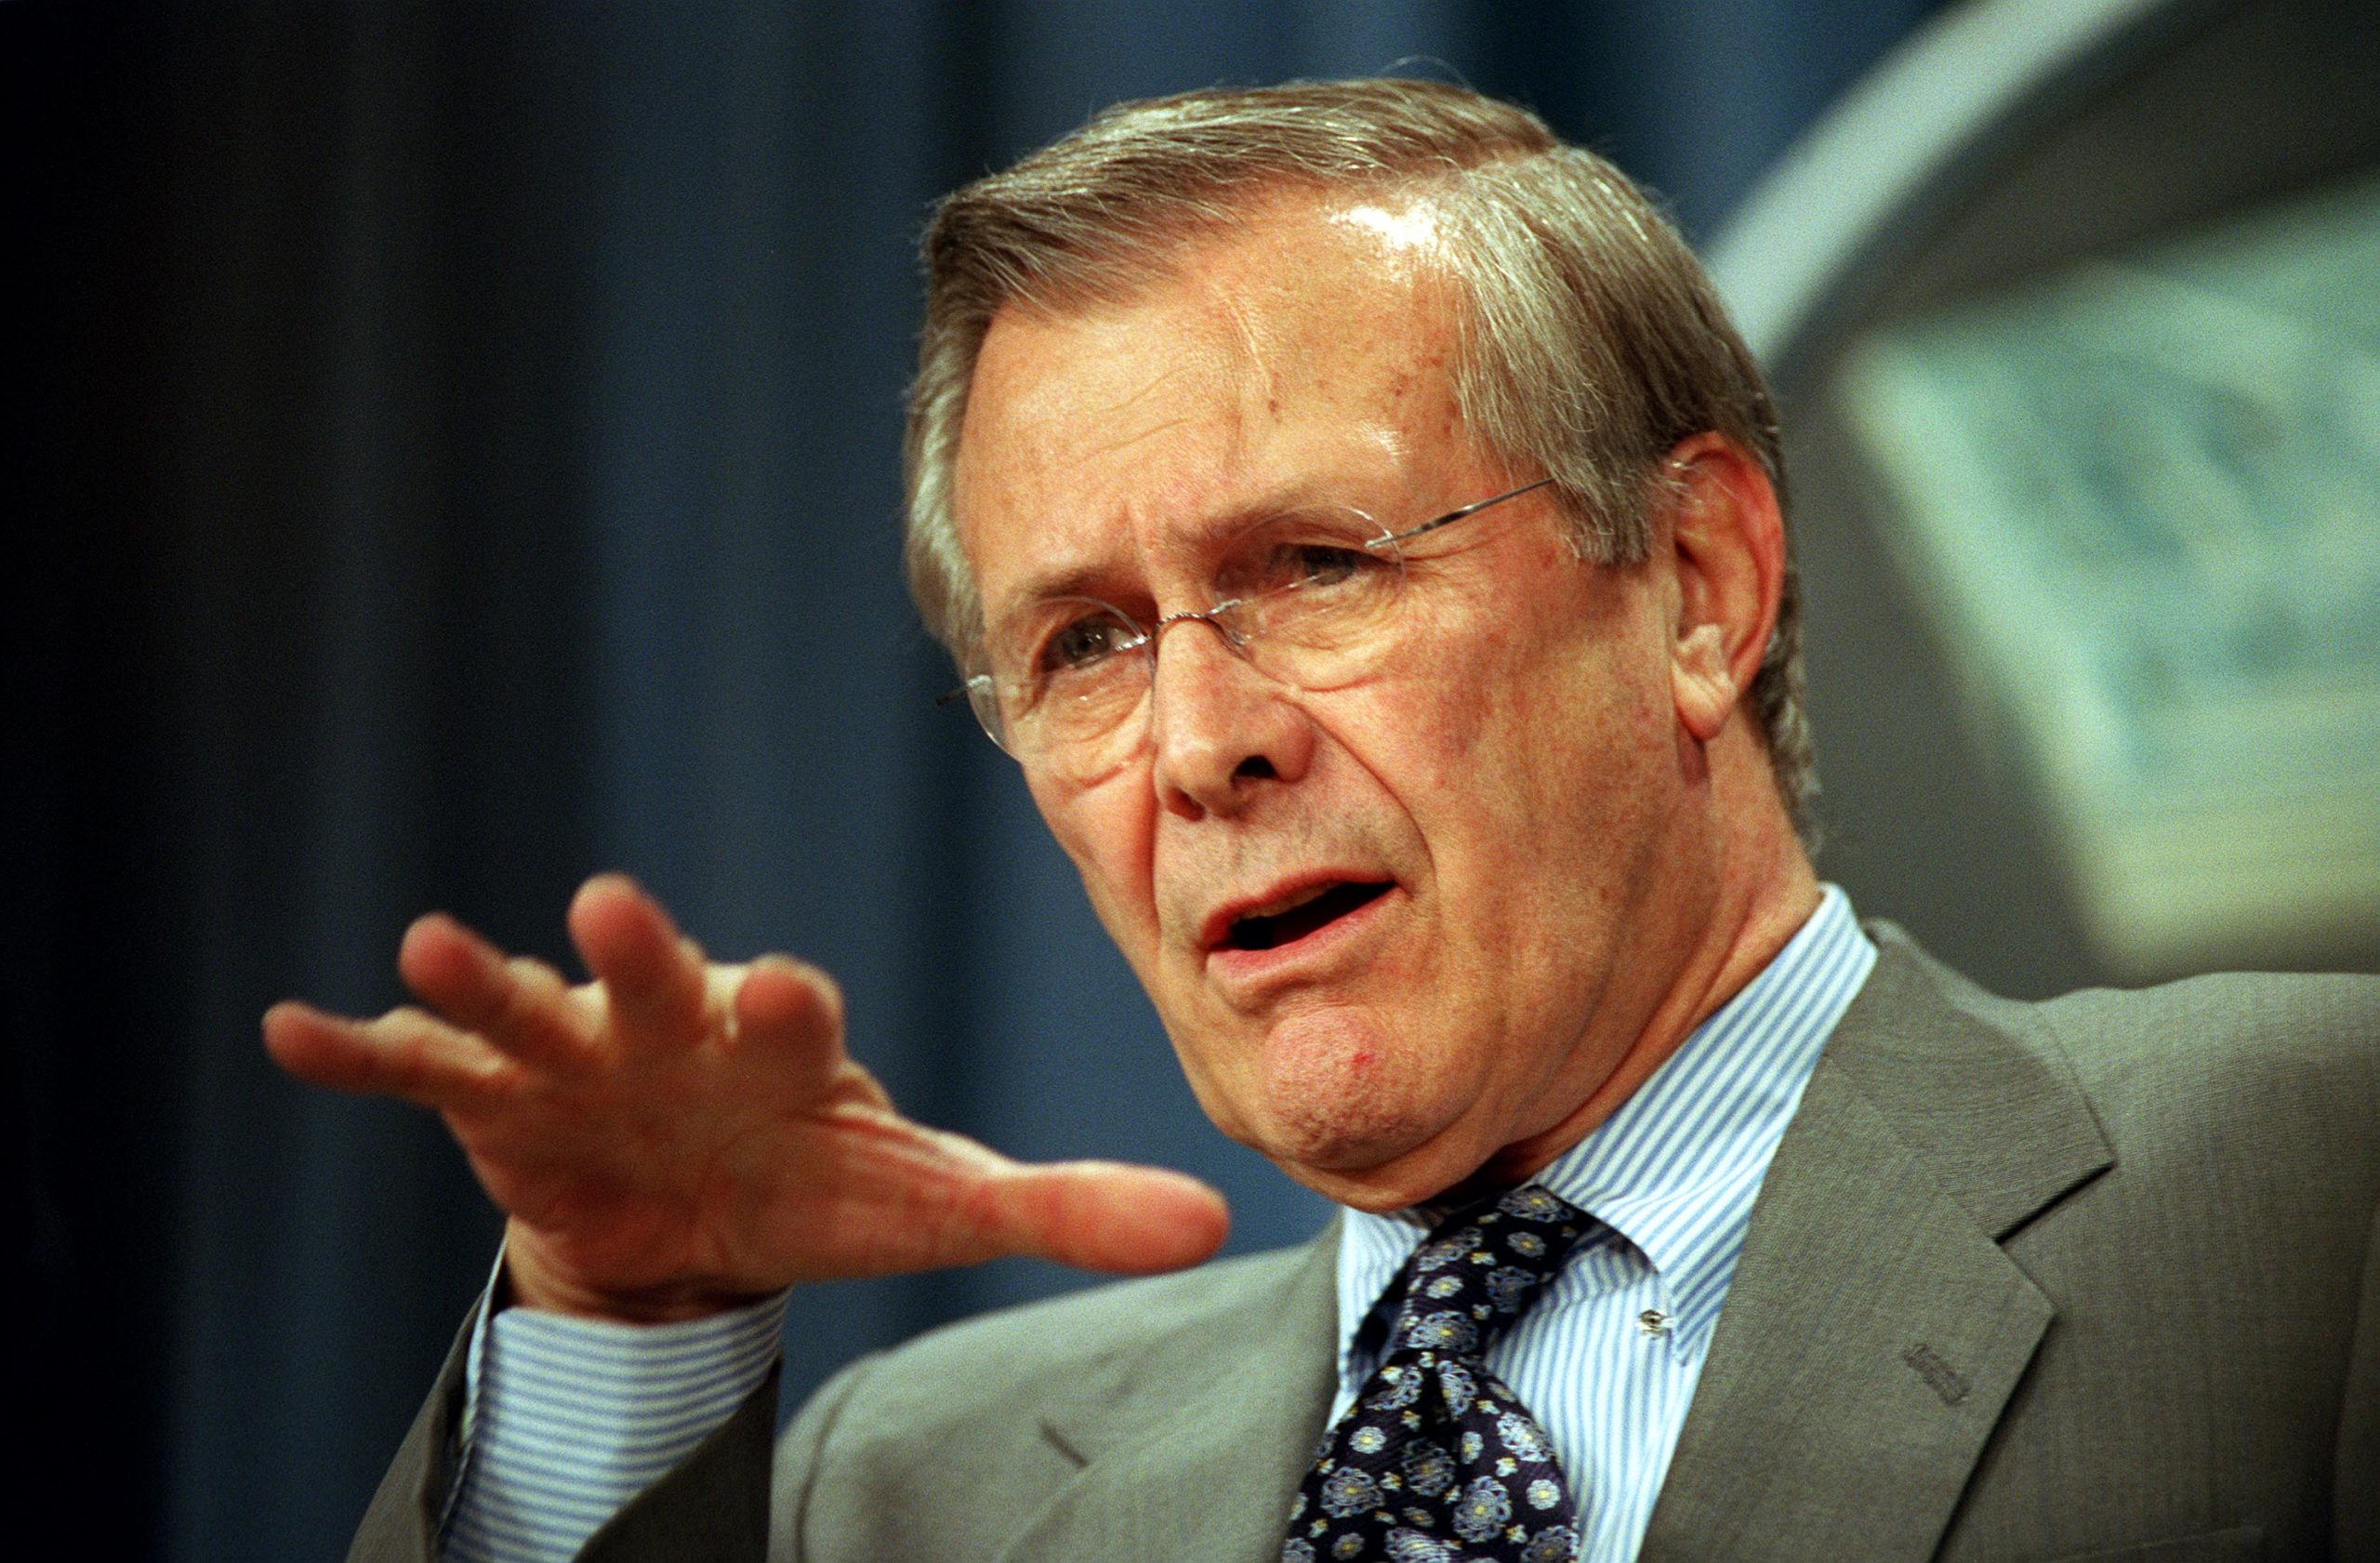 The Known Knowns of Donald Rumsfeld